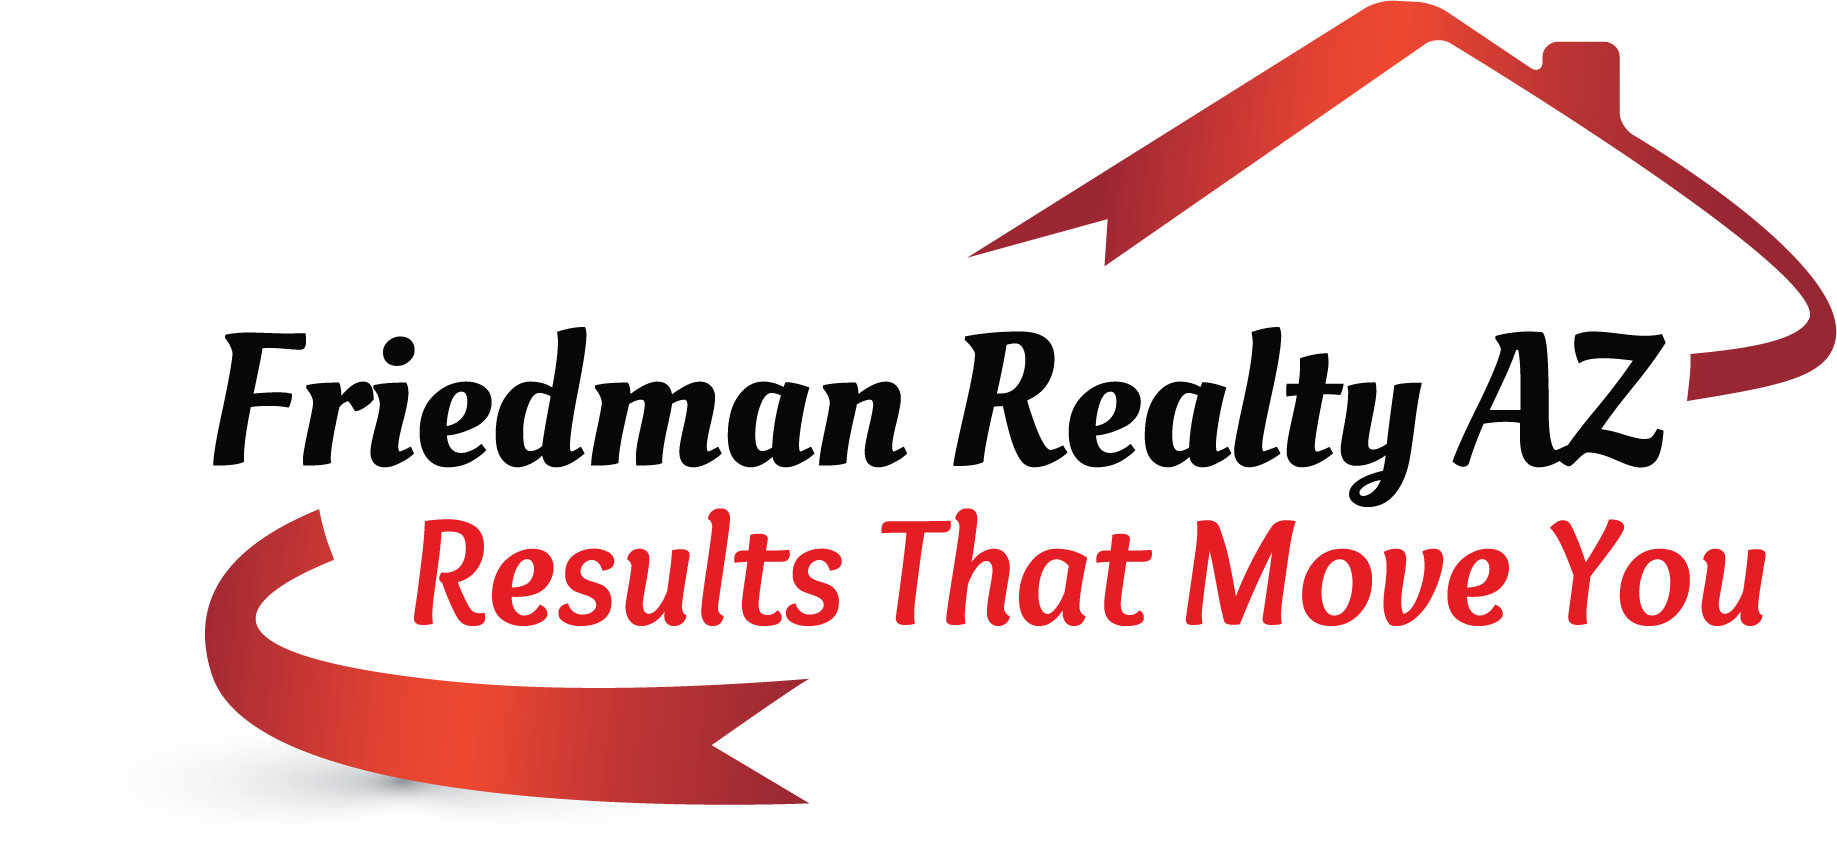 Friedman Realty AZ Results that Move You